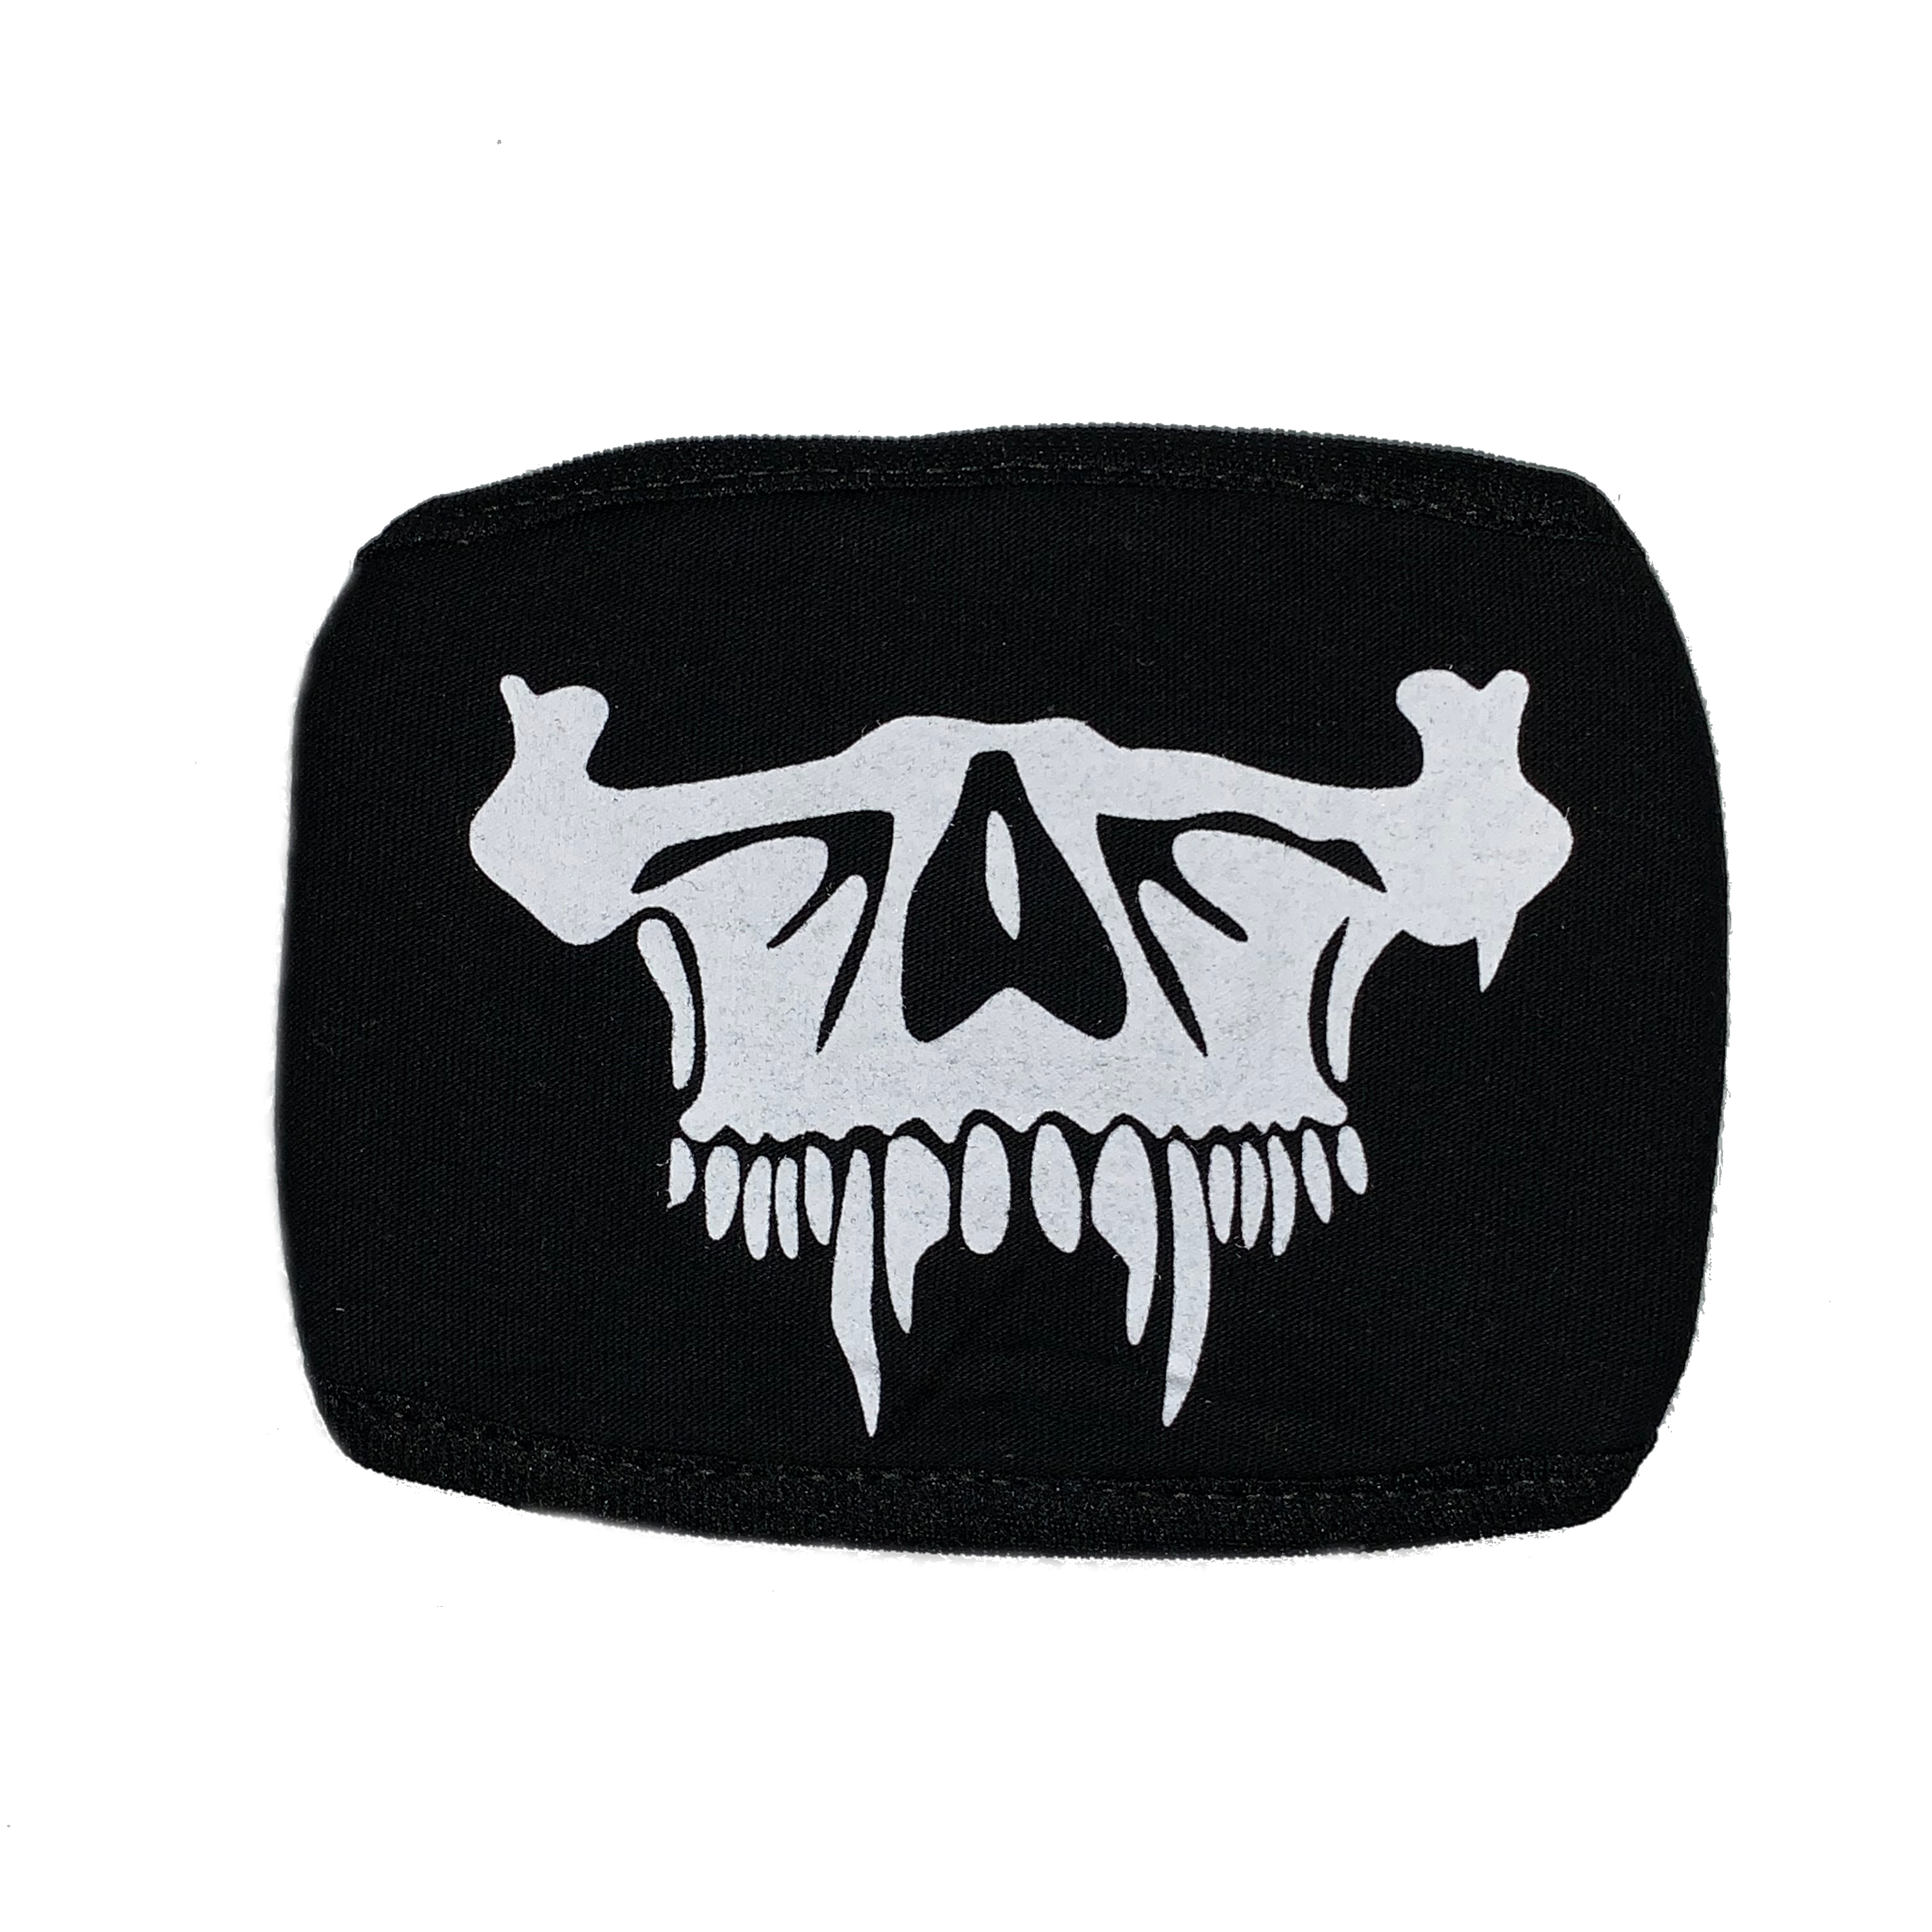 Cosplay Mask Face Mouth Mask Anime Vampire Skull Black One Size Fits Most